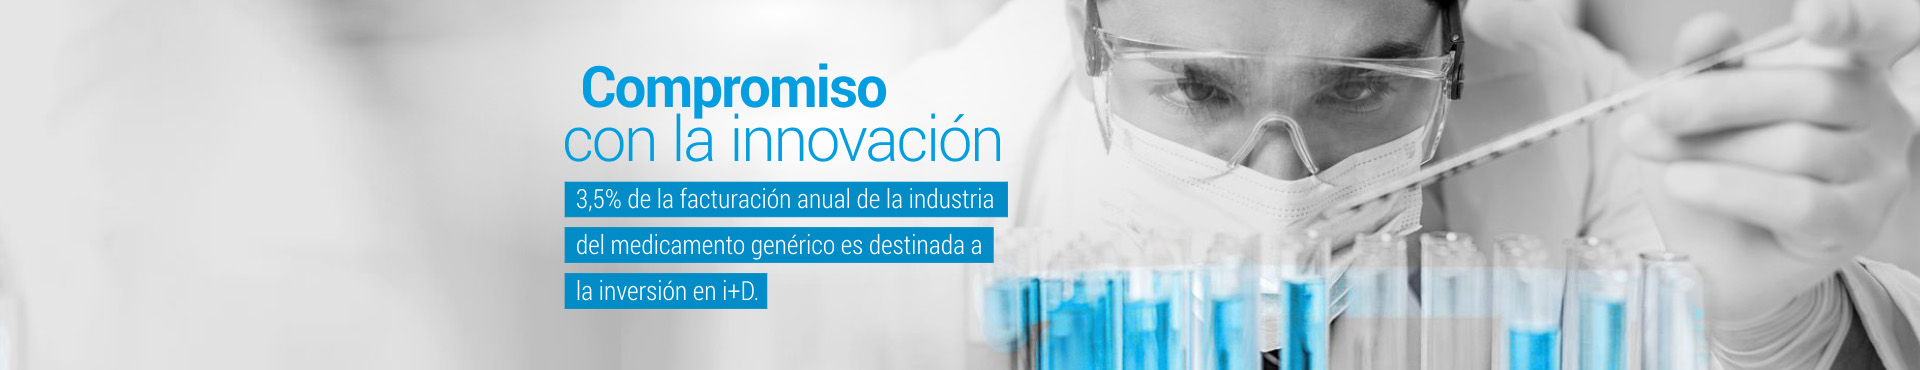 banner-canales-compromiso-innovacion